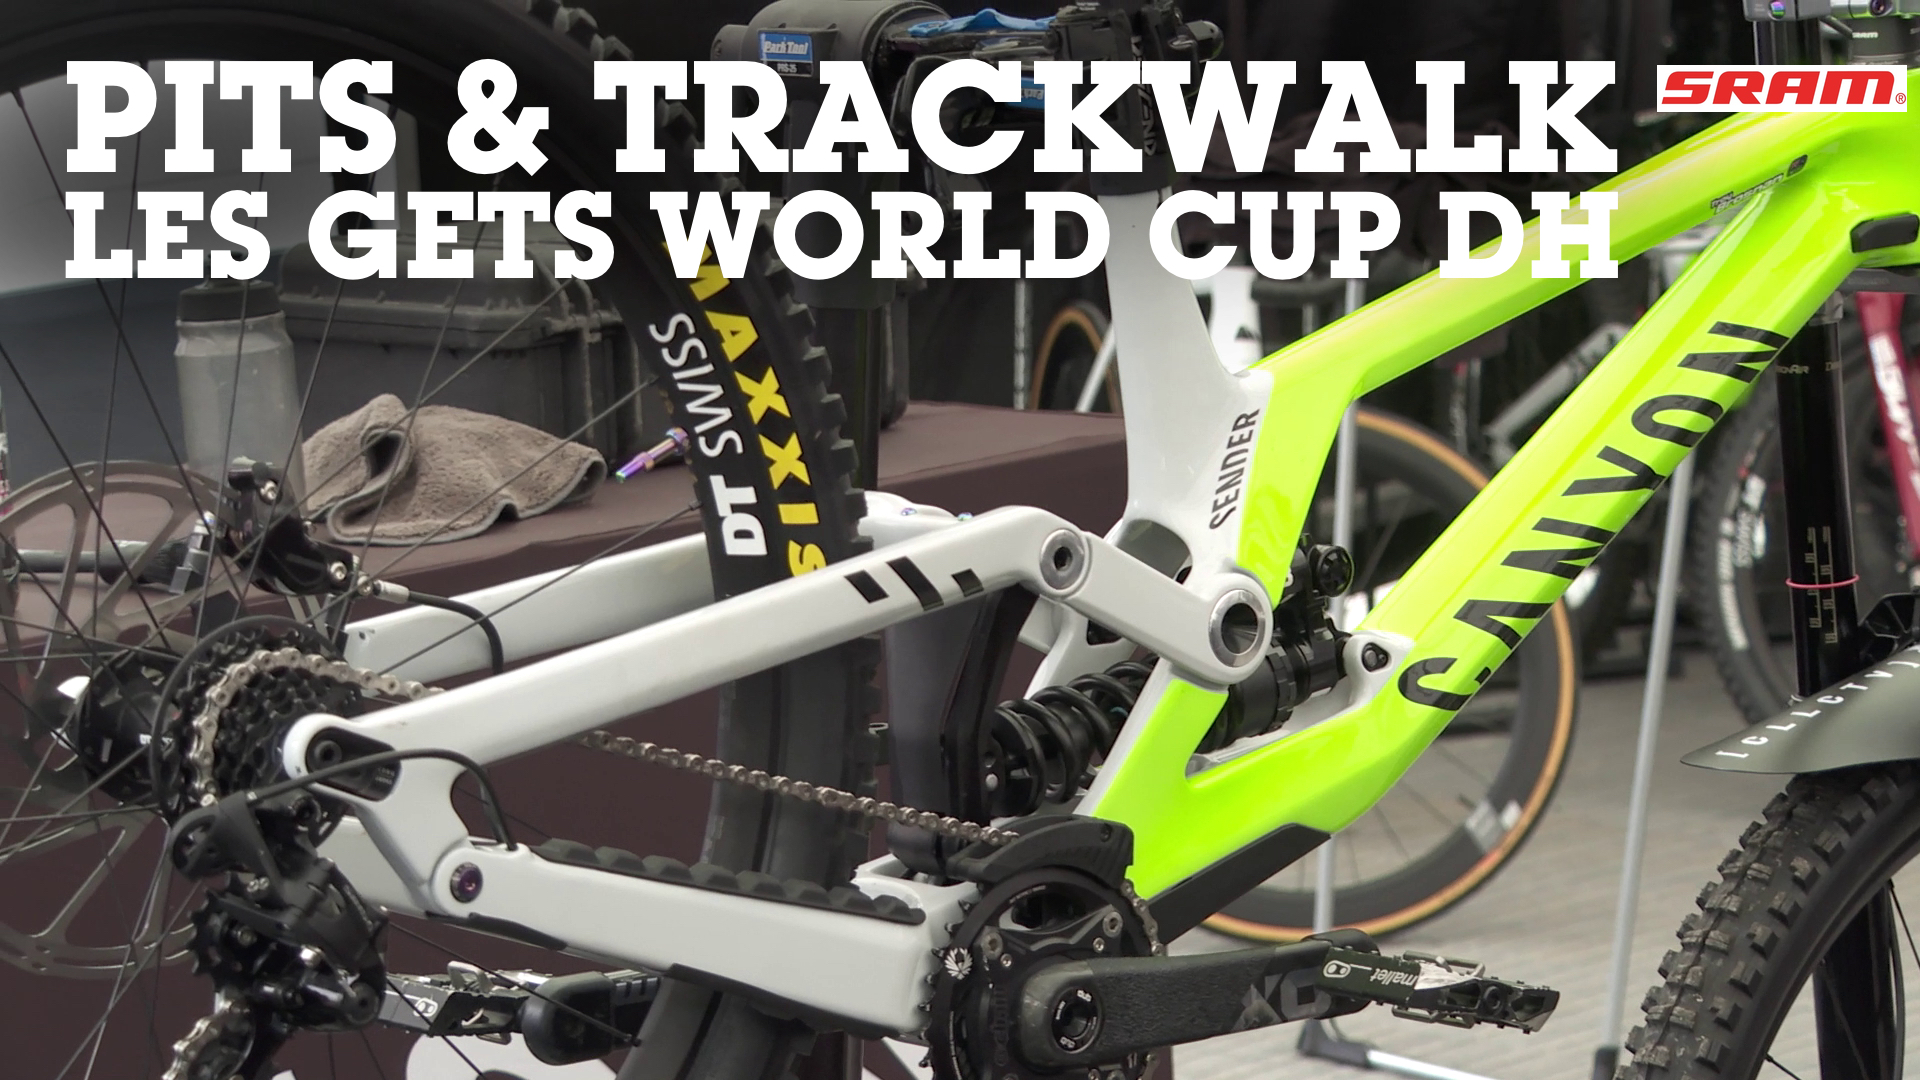 WORLD CUP DH PITS AND TRACKWALK - Les Gets